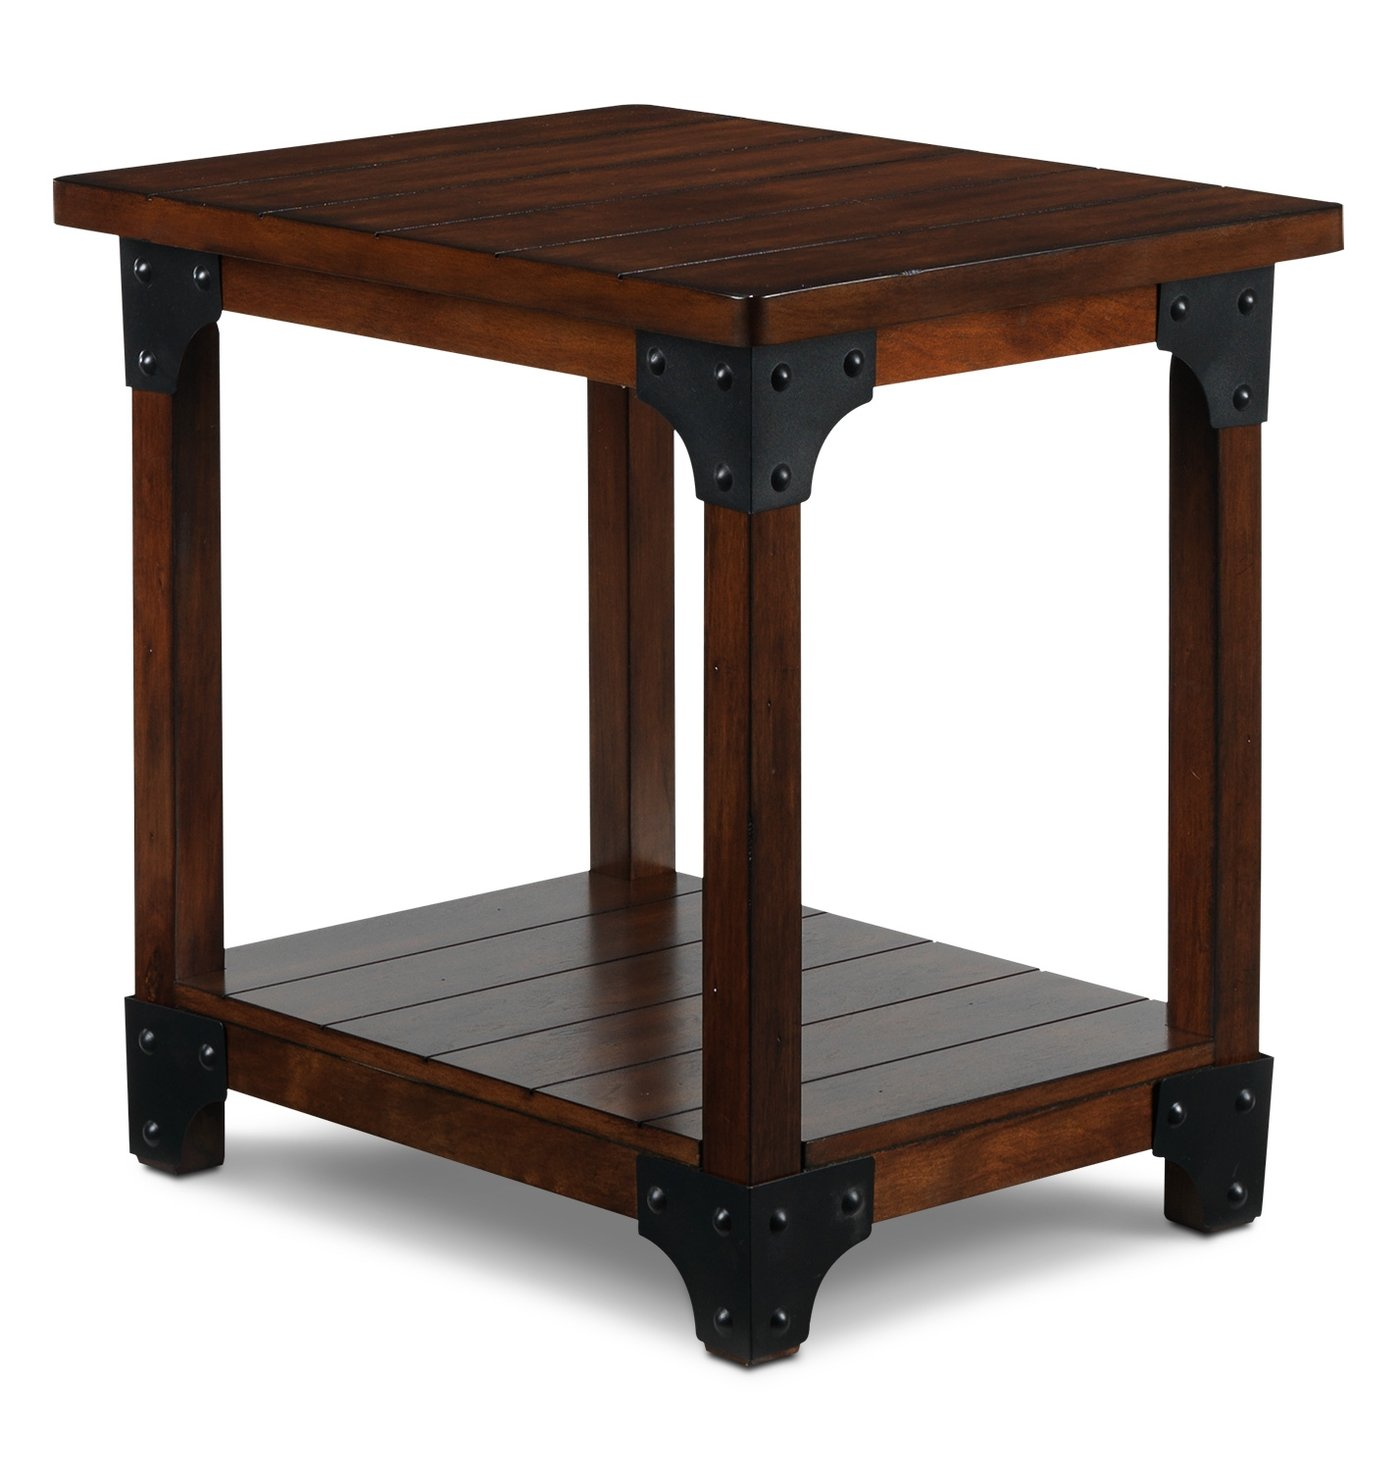 wellington coffee table and end walnut leon leons tables side wicker small lamps for bedroom glass high dining liberty room furniture reviews stickley audi kmart storage two